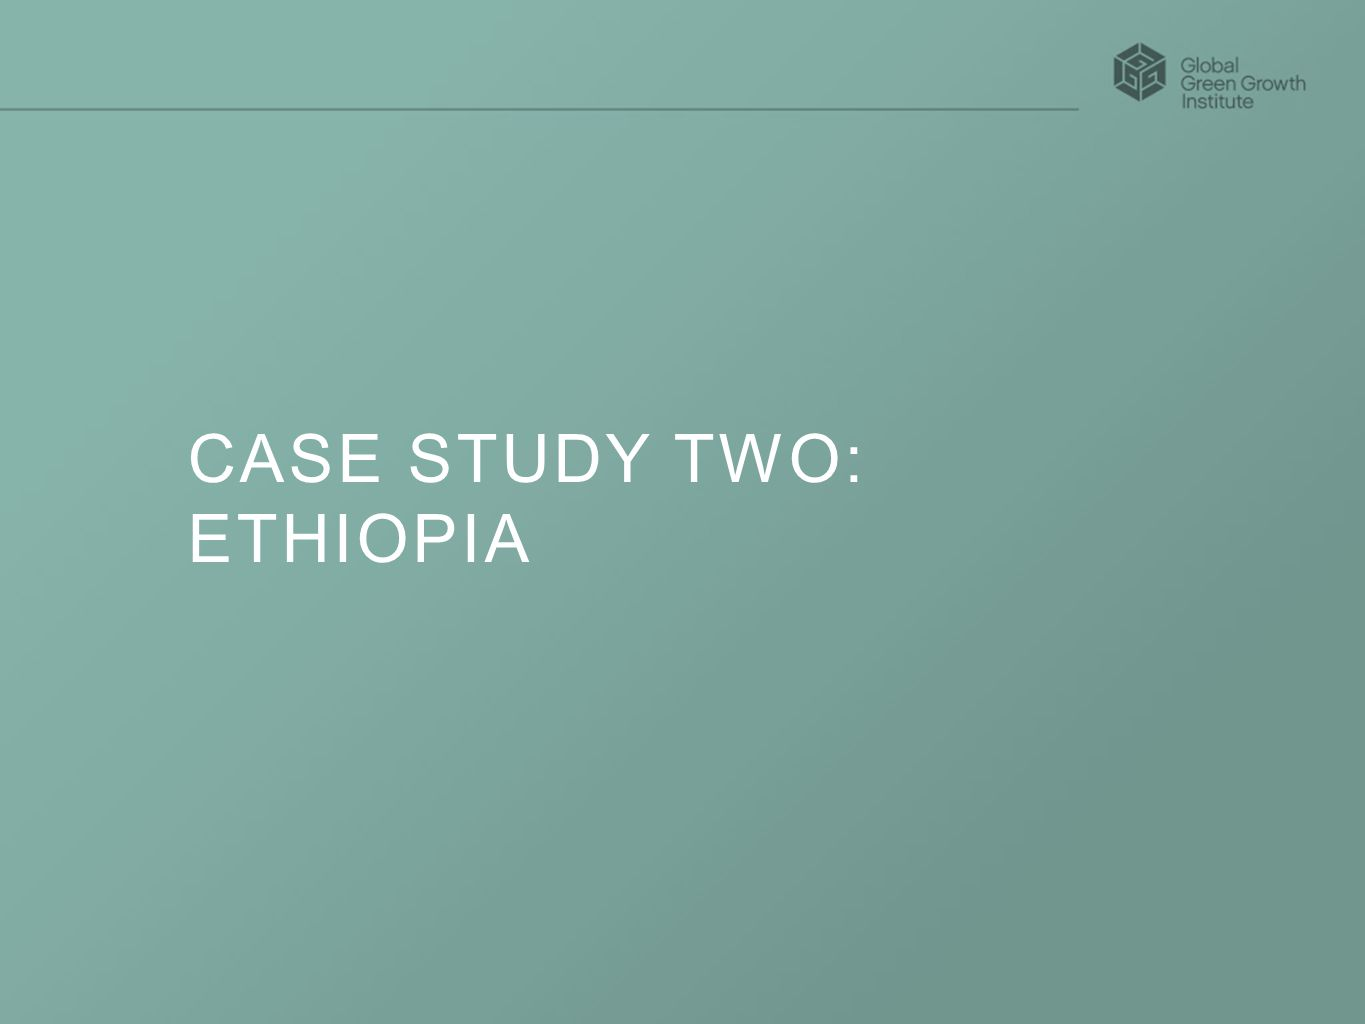 CASE STUDY TWO: ETHIOPIA